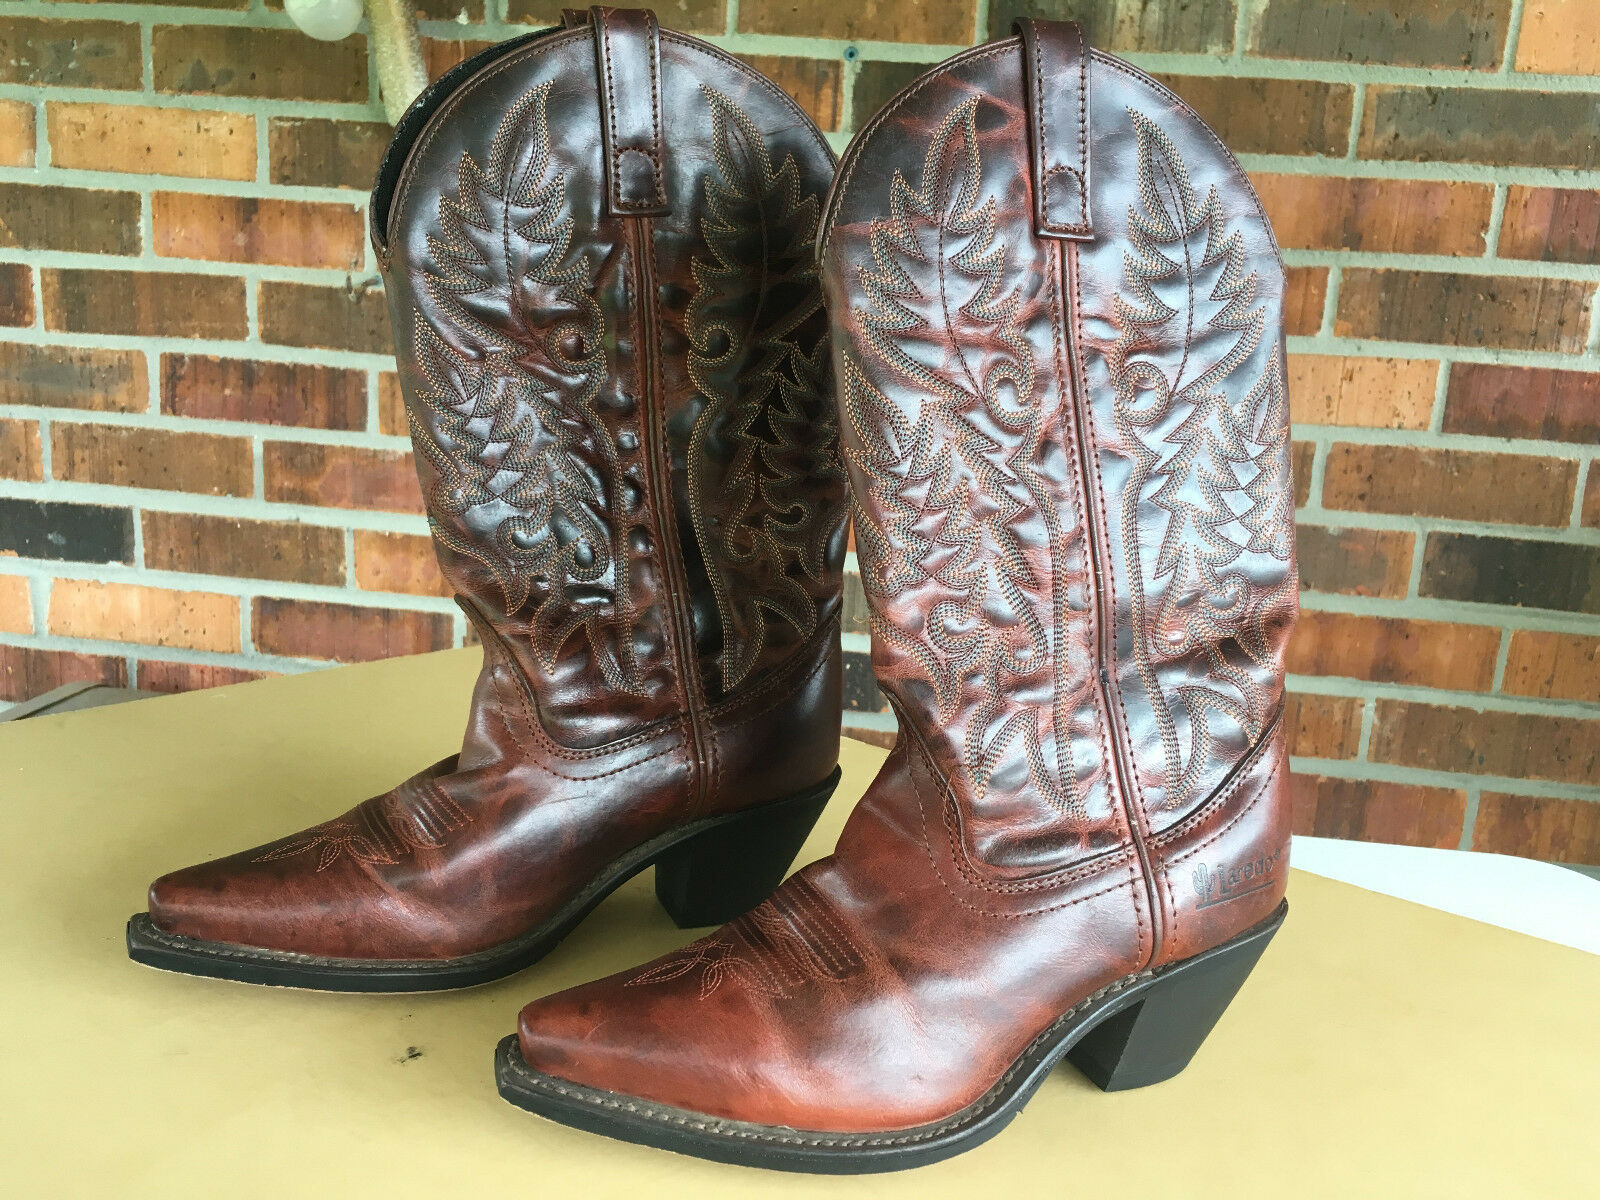 LAREDO 51059 Western Fashion 11  Cowboy Boot Women Sz 6 M (US)            E13(5)